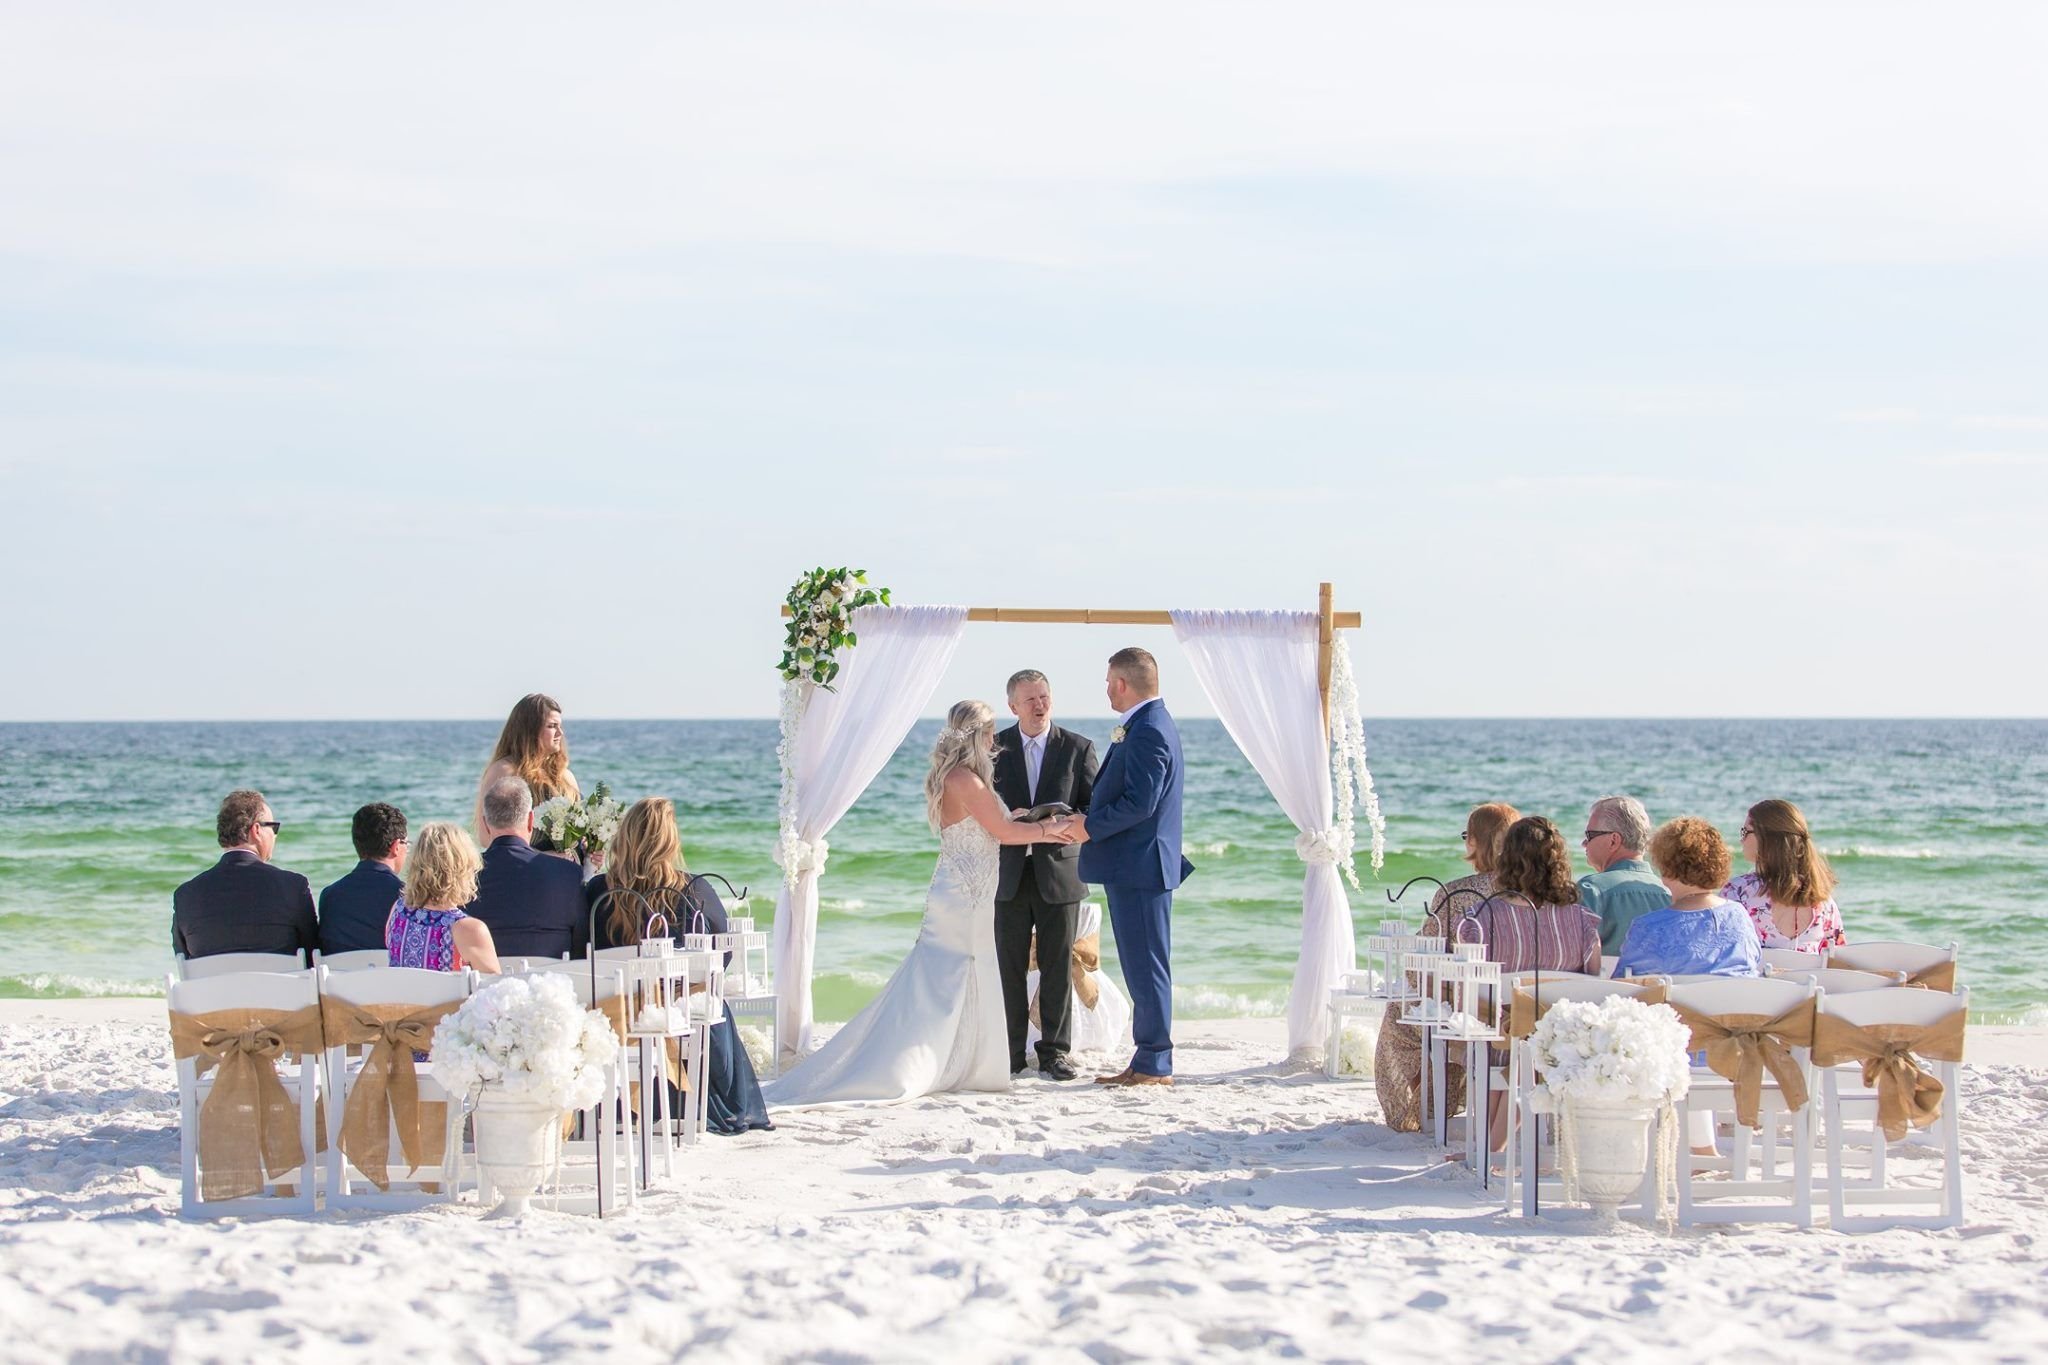 Panama City Wedding Ceremony Florida In 2020 Florida Beach Wedding Beach Wedding Packages Panama City Beach Florida